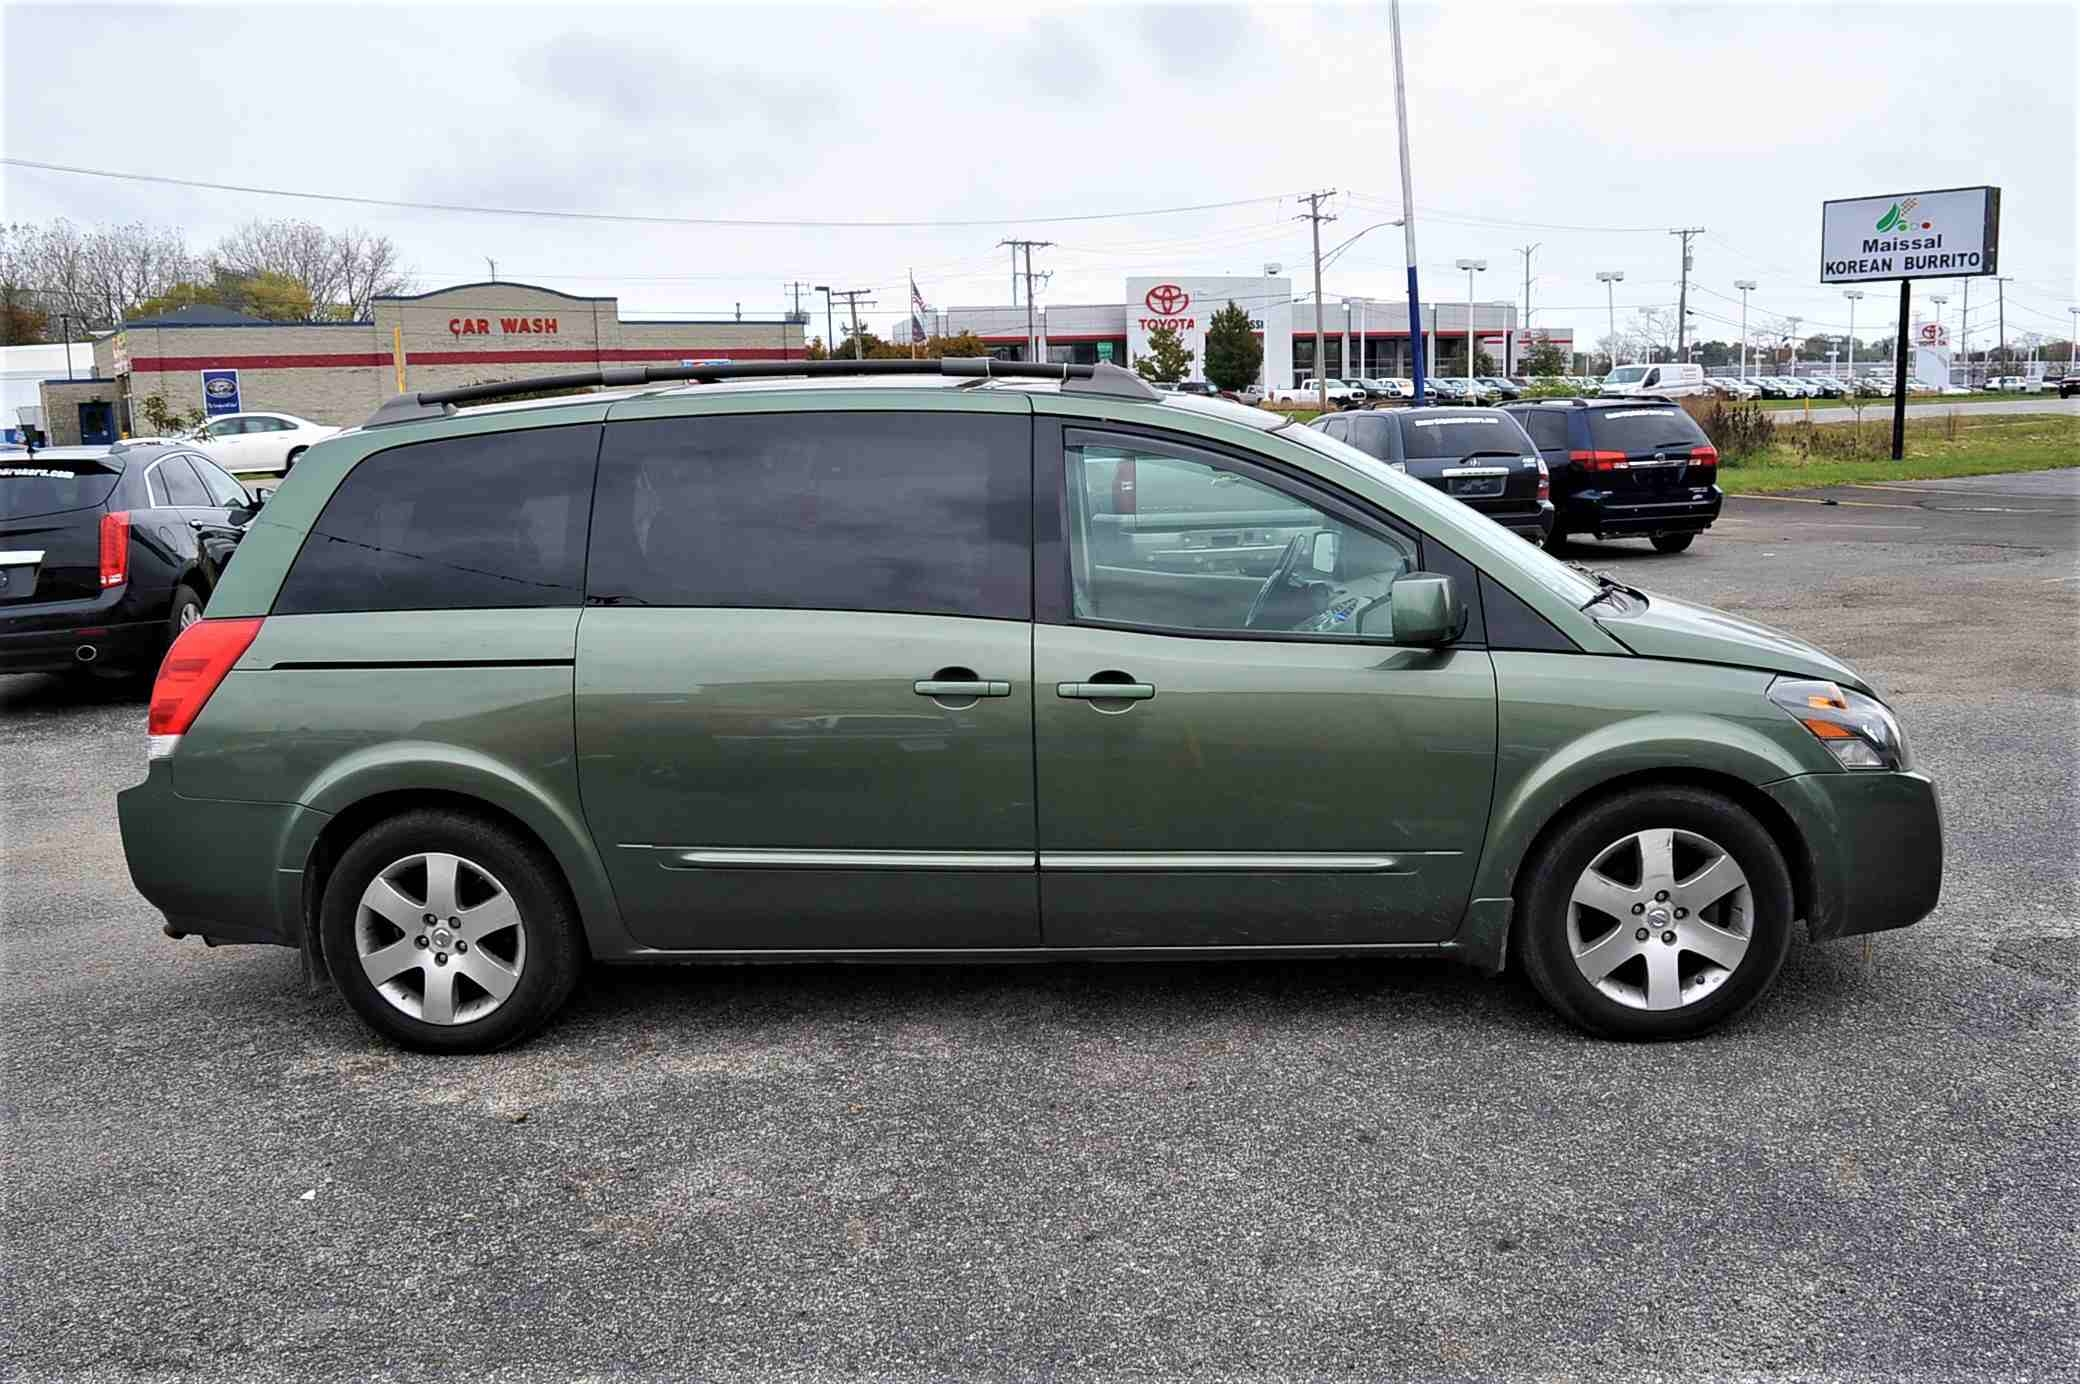 2004 Nissan Quest SE Green Used Minivan Sale Bannockburn Barrington Beach Park